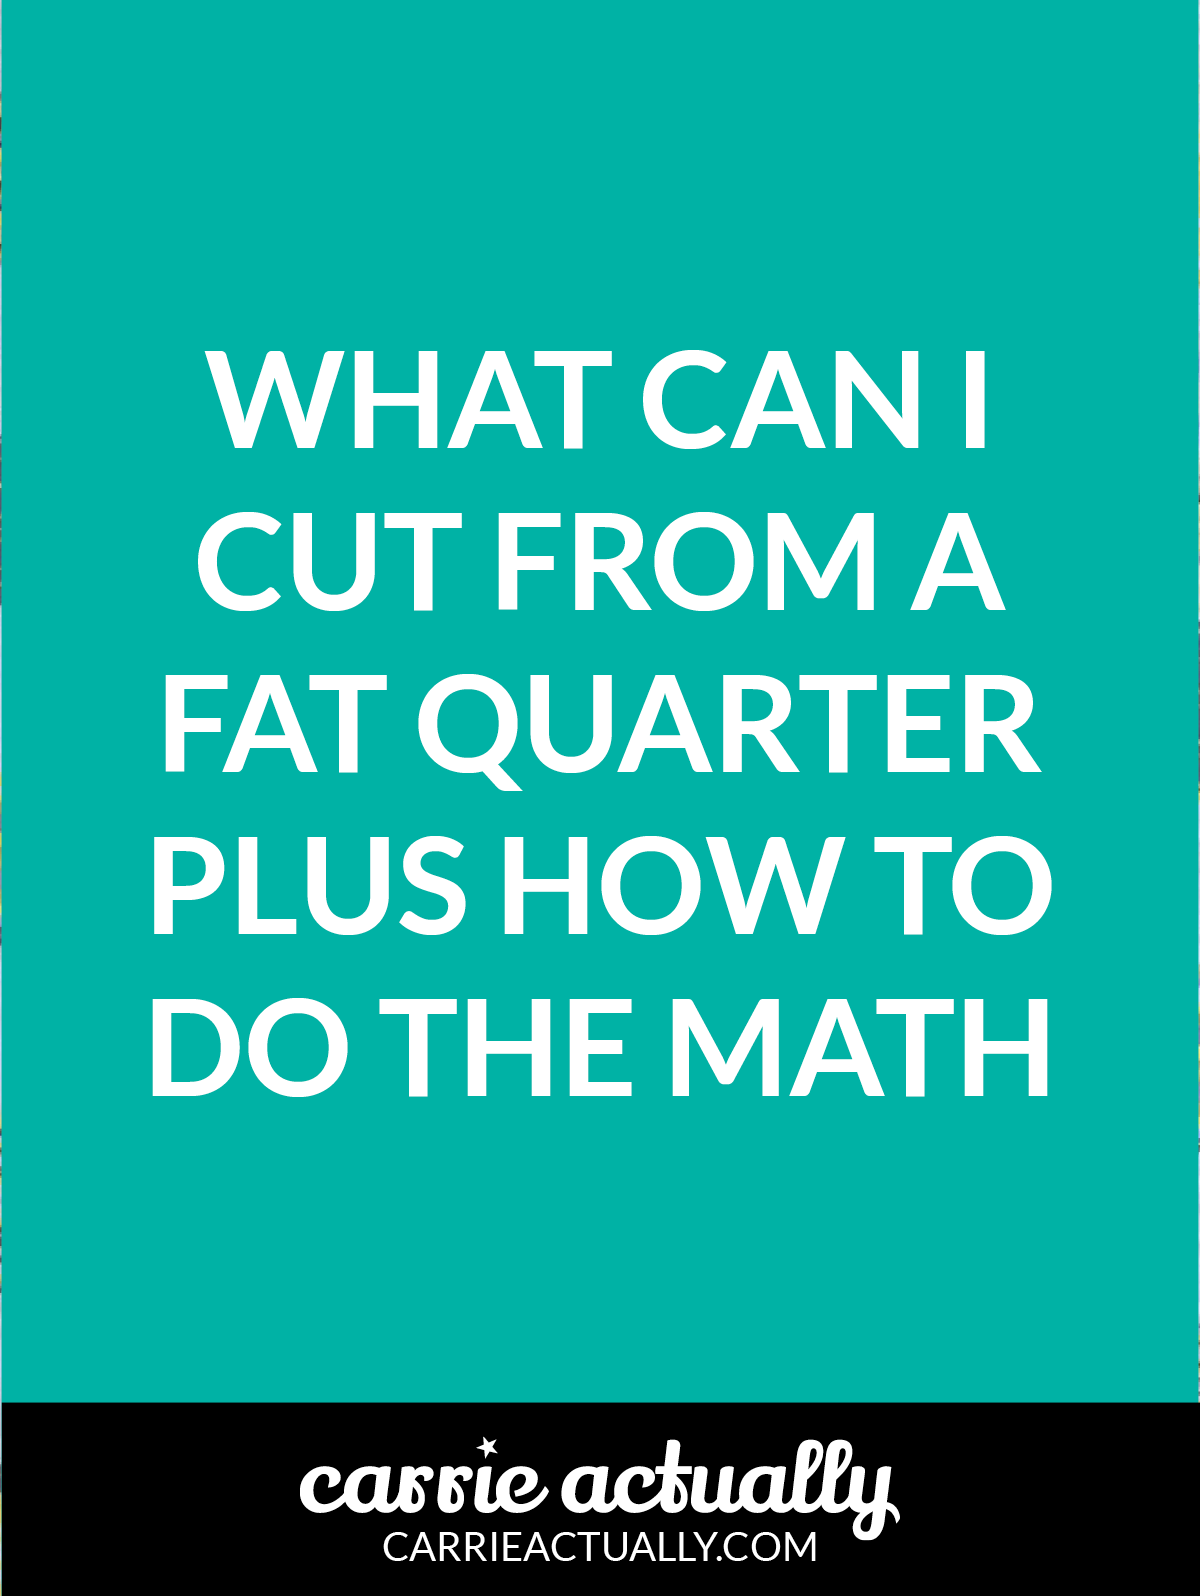 What can I cut from a fat quarter plus how to do the math | This post contains a chart that shows how many of each full inch size square and rectangle pieces you can rotary cut from a fat quarter.